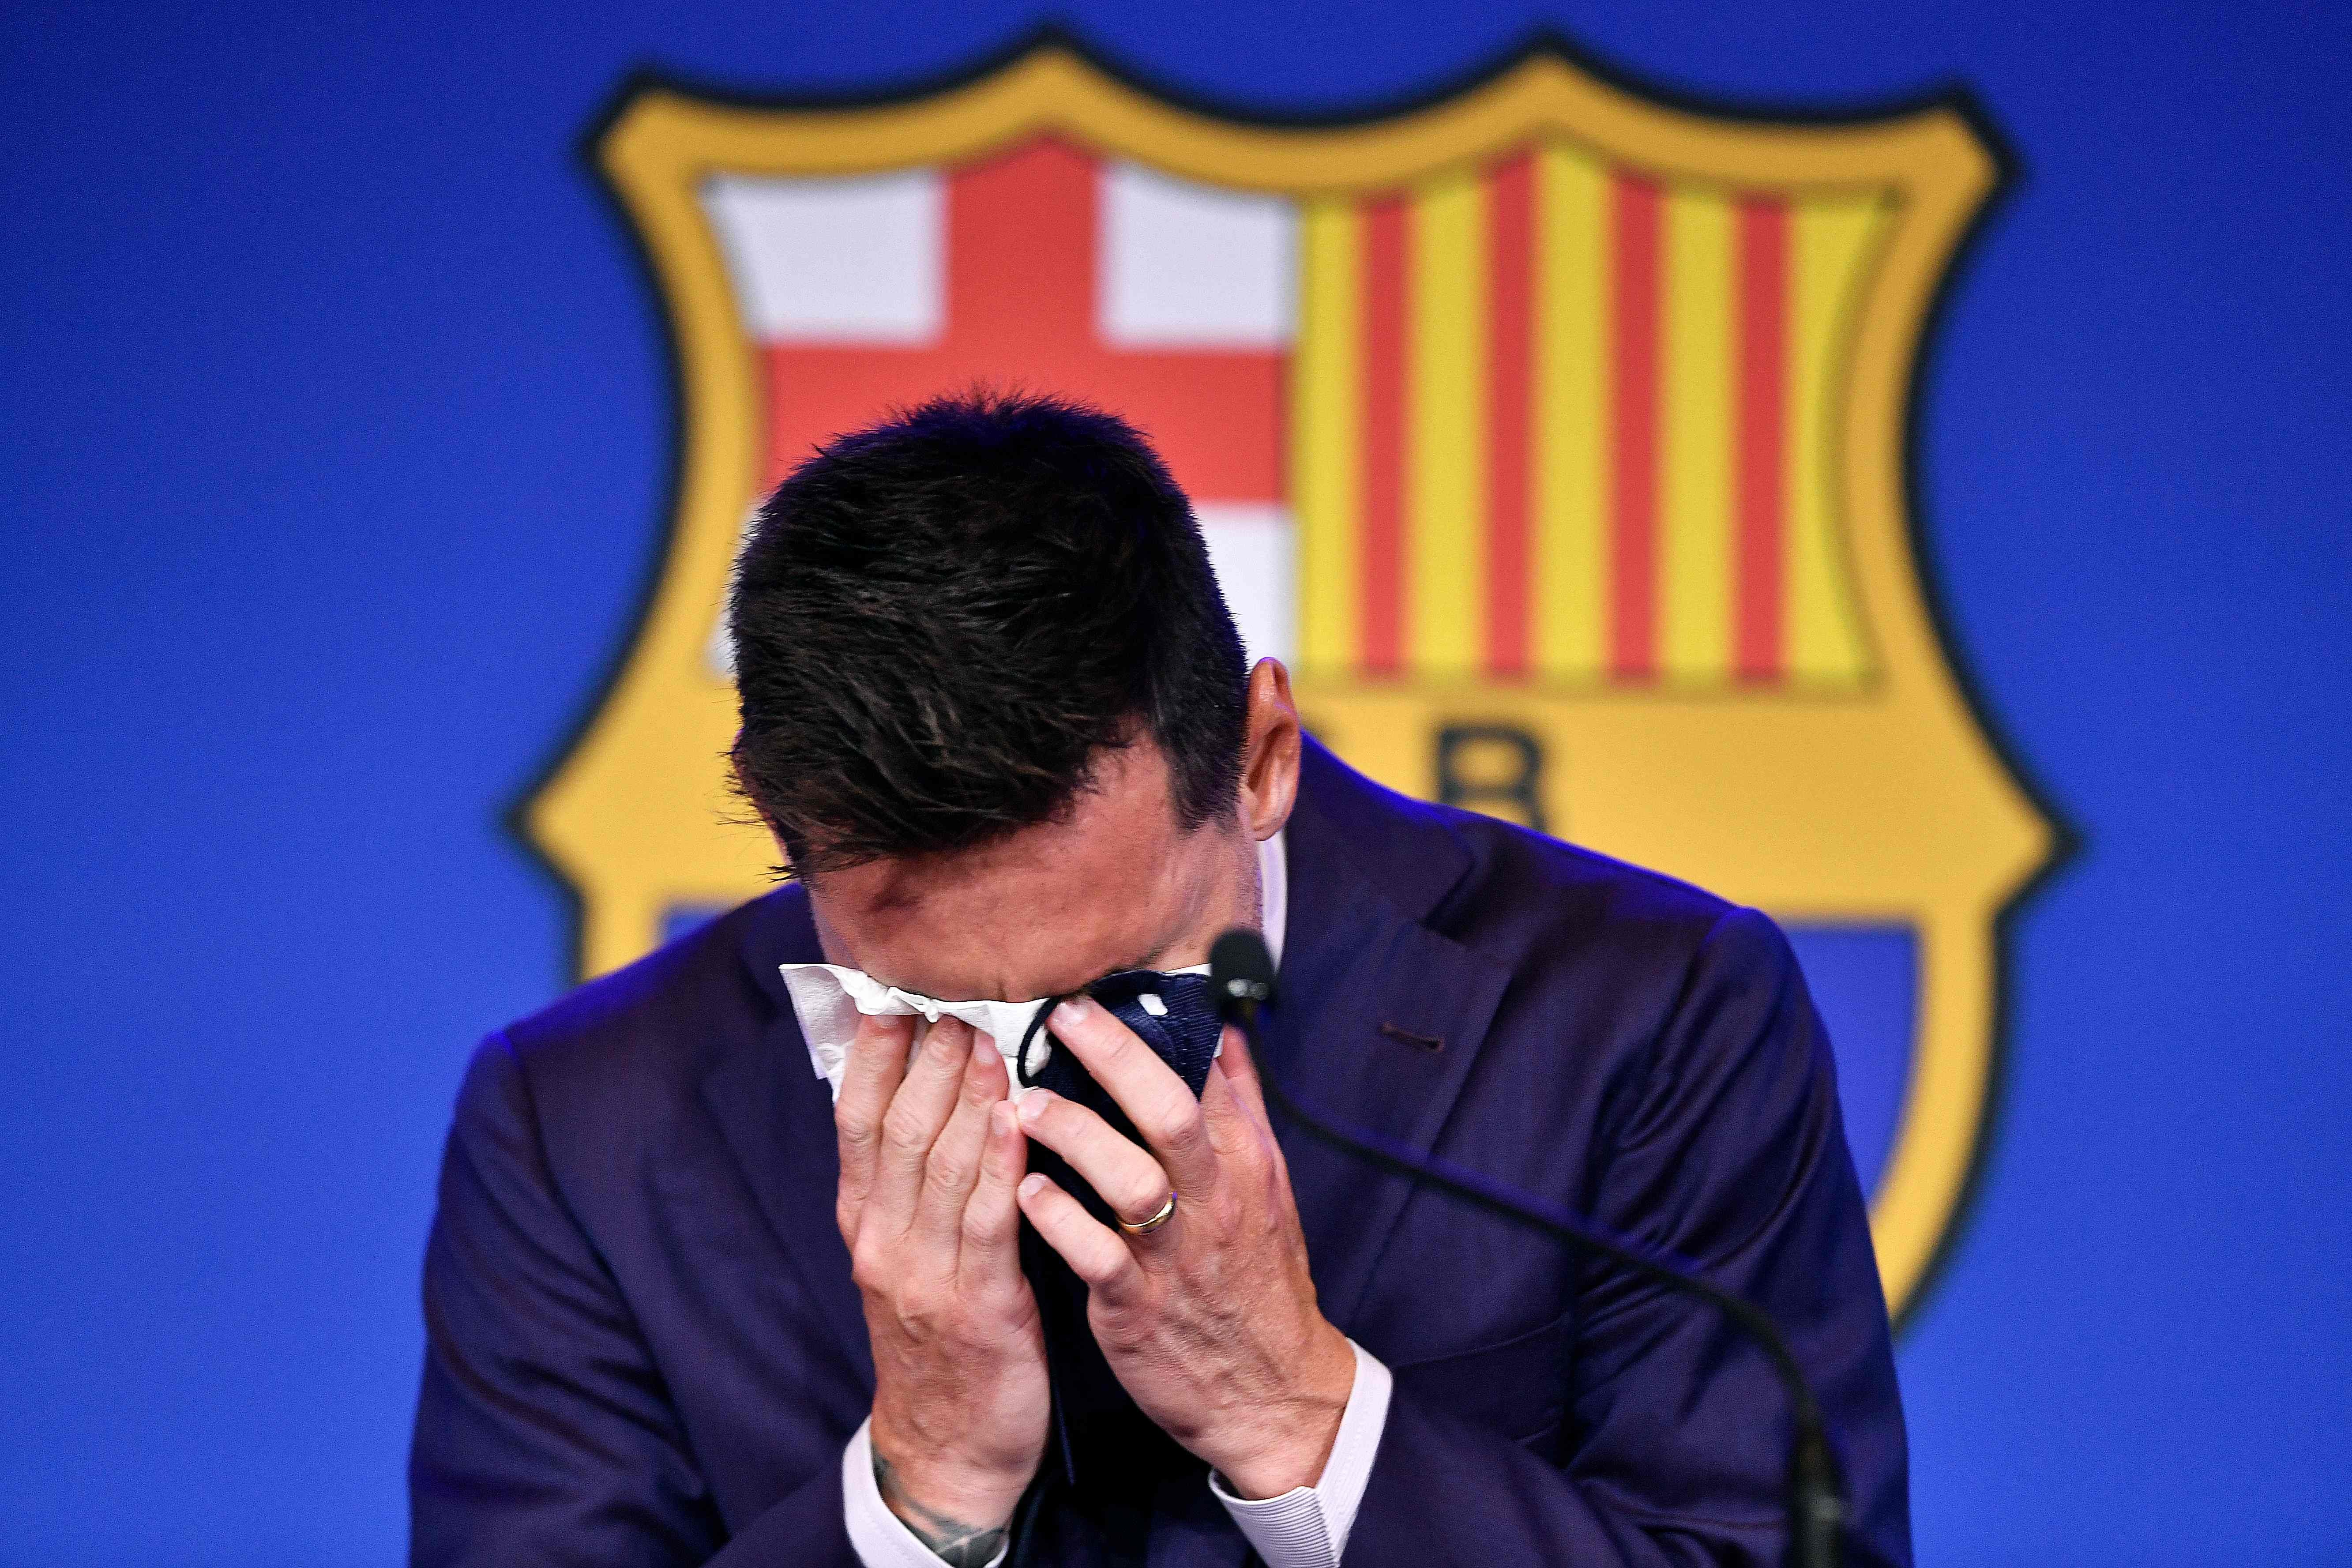 'I'm not ready for this': Tearful soccer icon Messi confirms bitter Barcelona exit